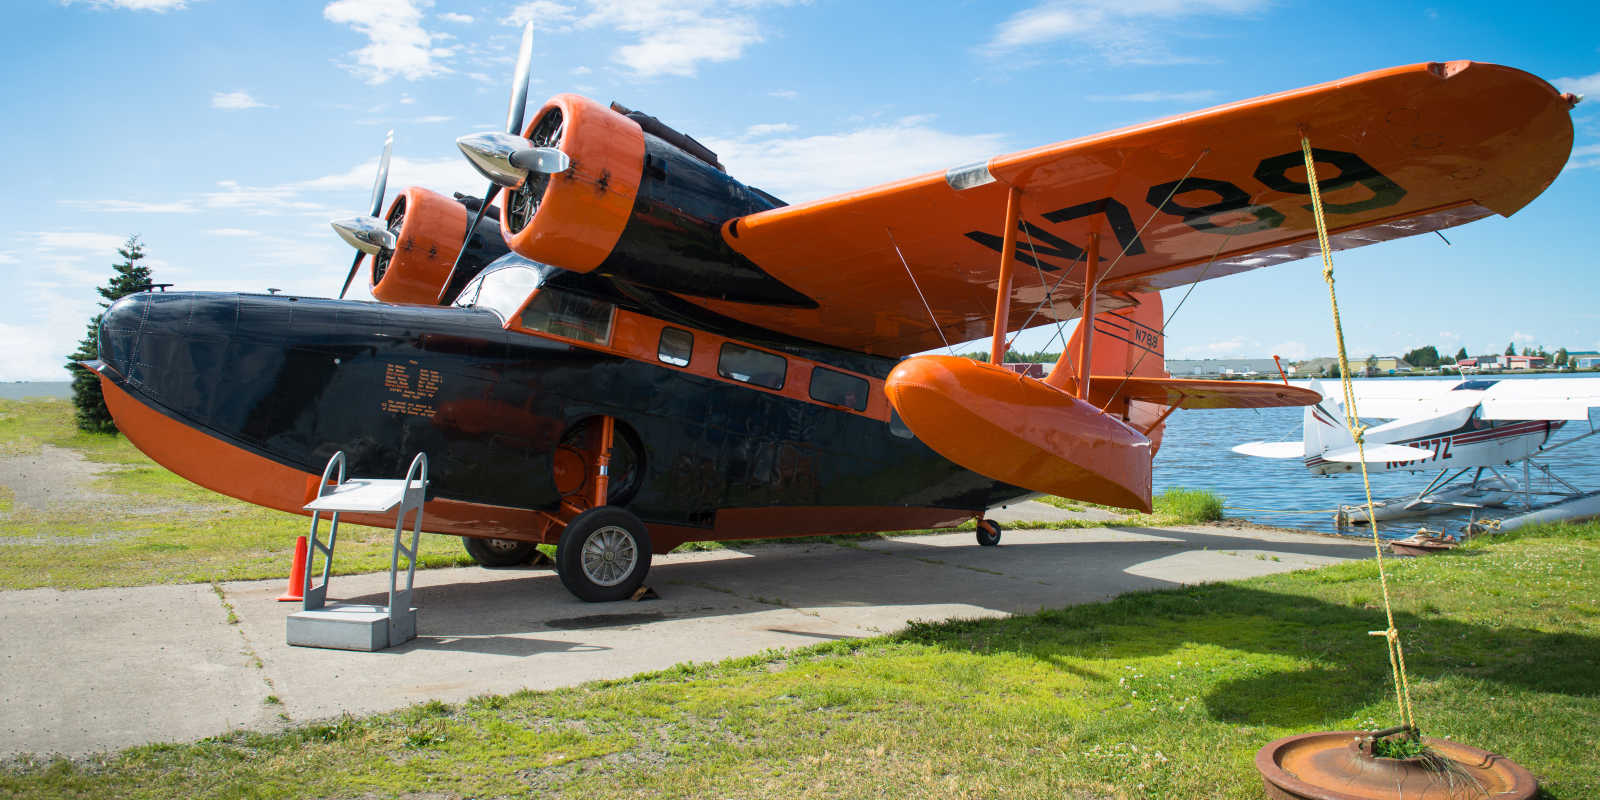 Alaska Aviation museum historic aircraft